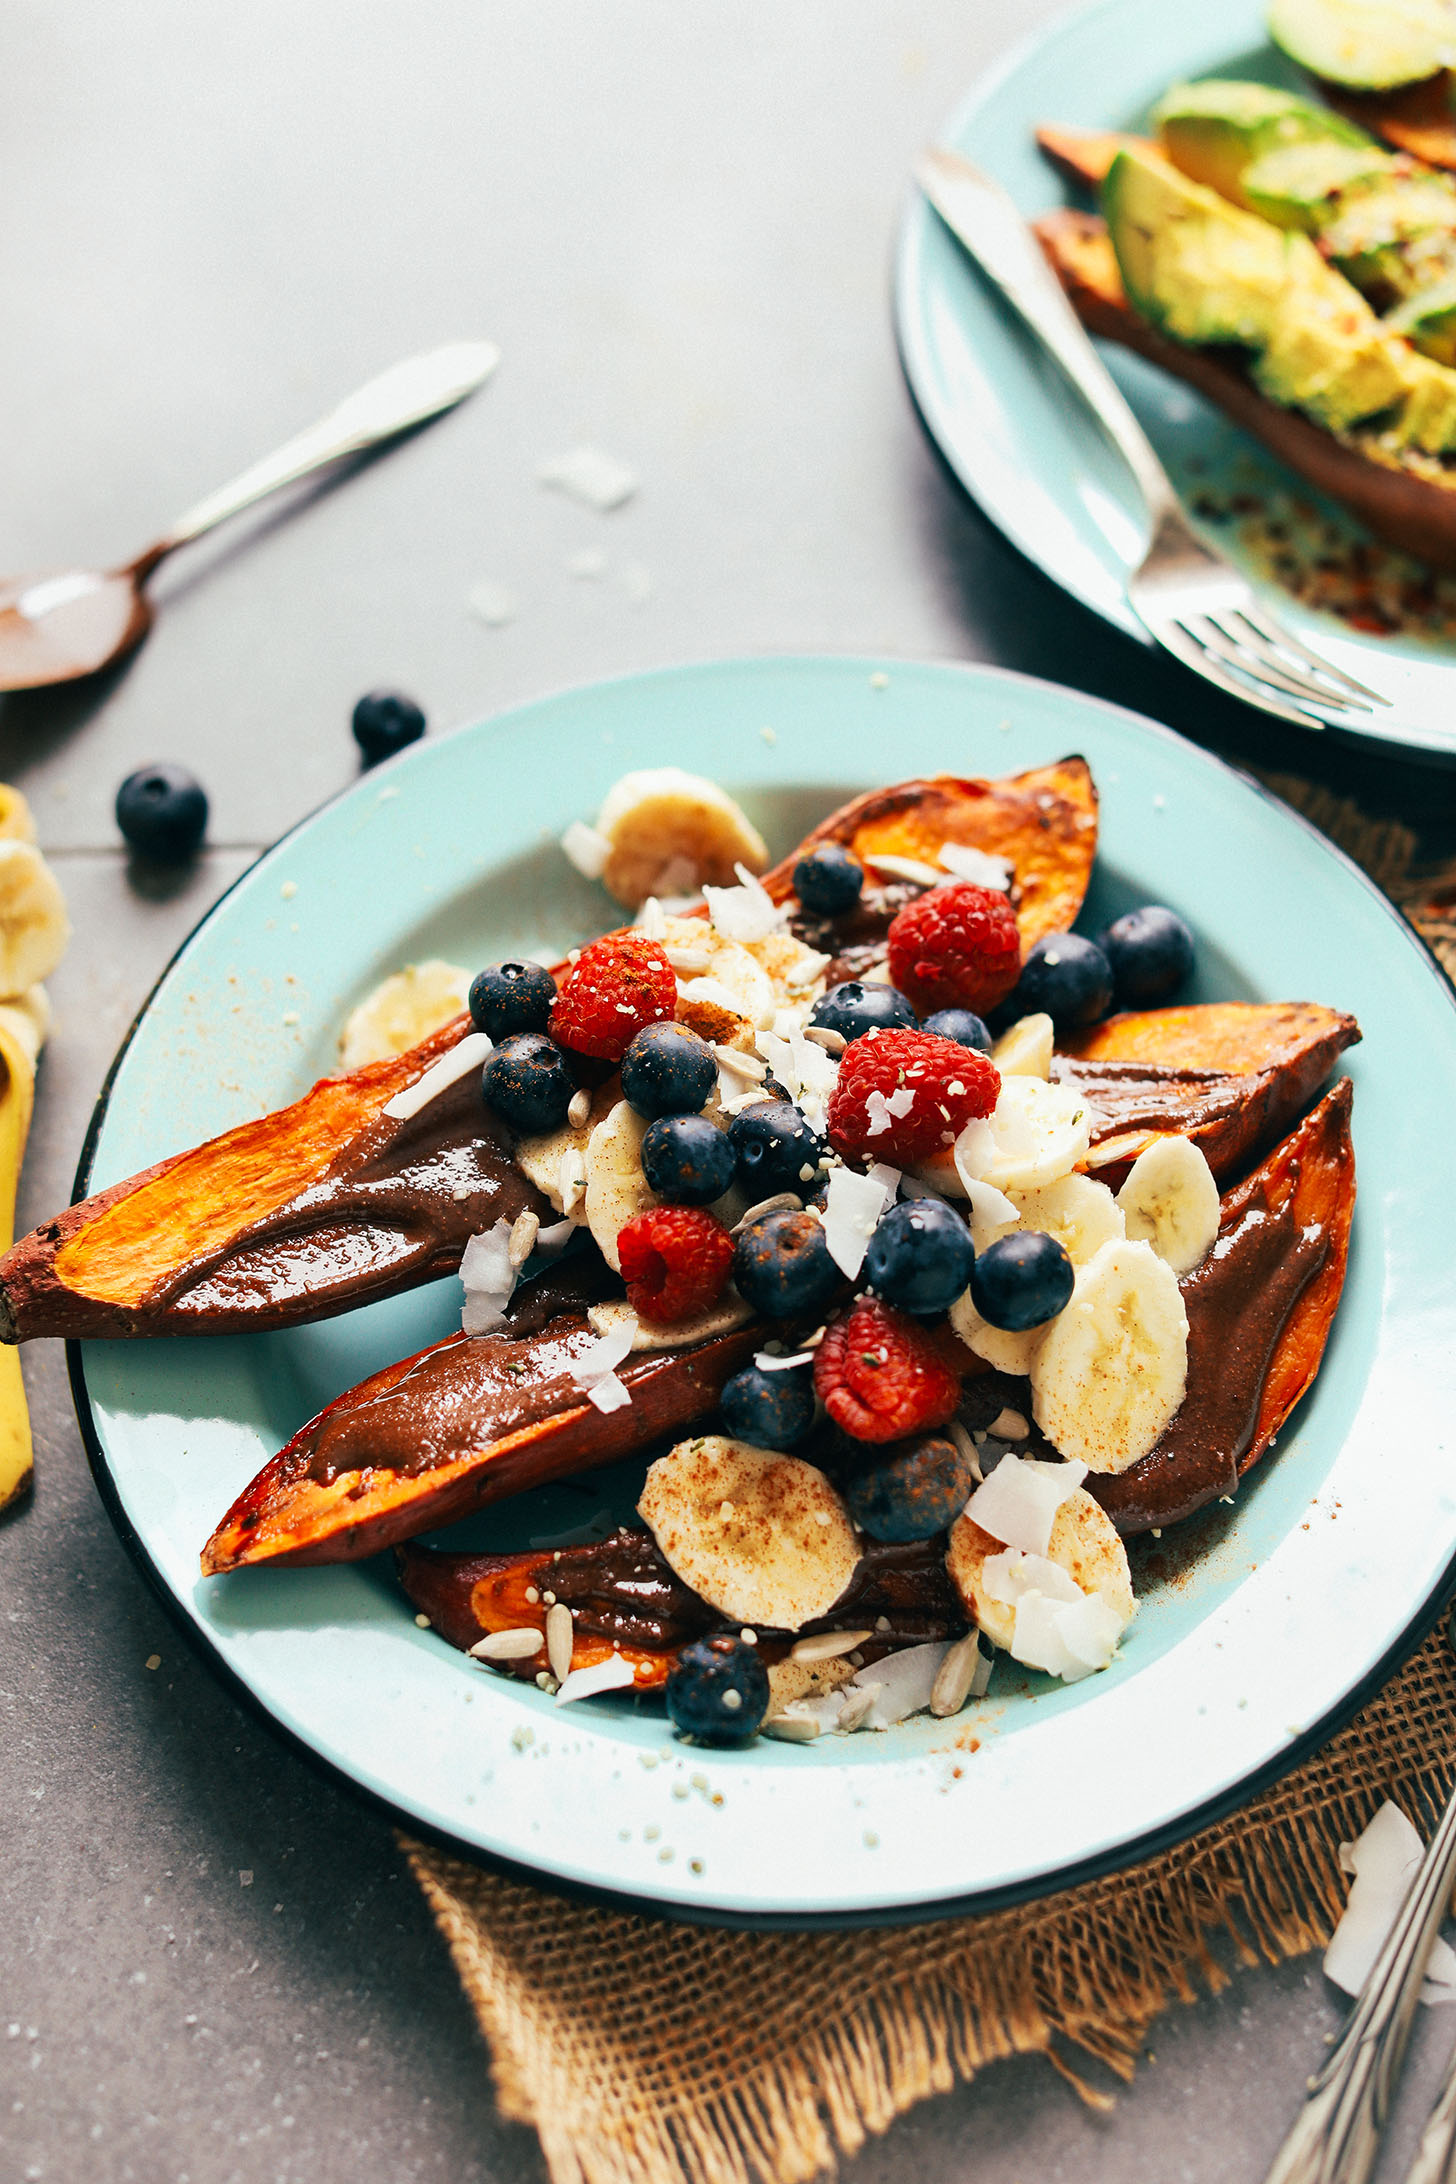 Plate with baked sweet potato topped with vegan melted chocolate, banana, fresh berries, and coconut flakes